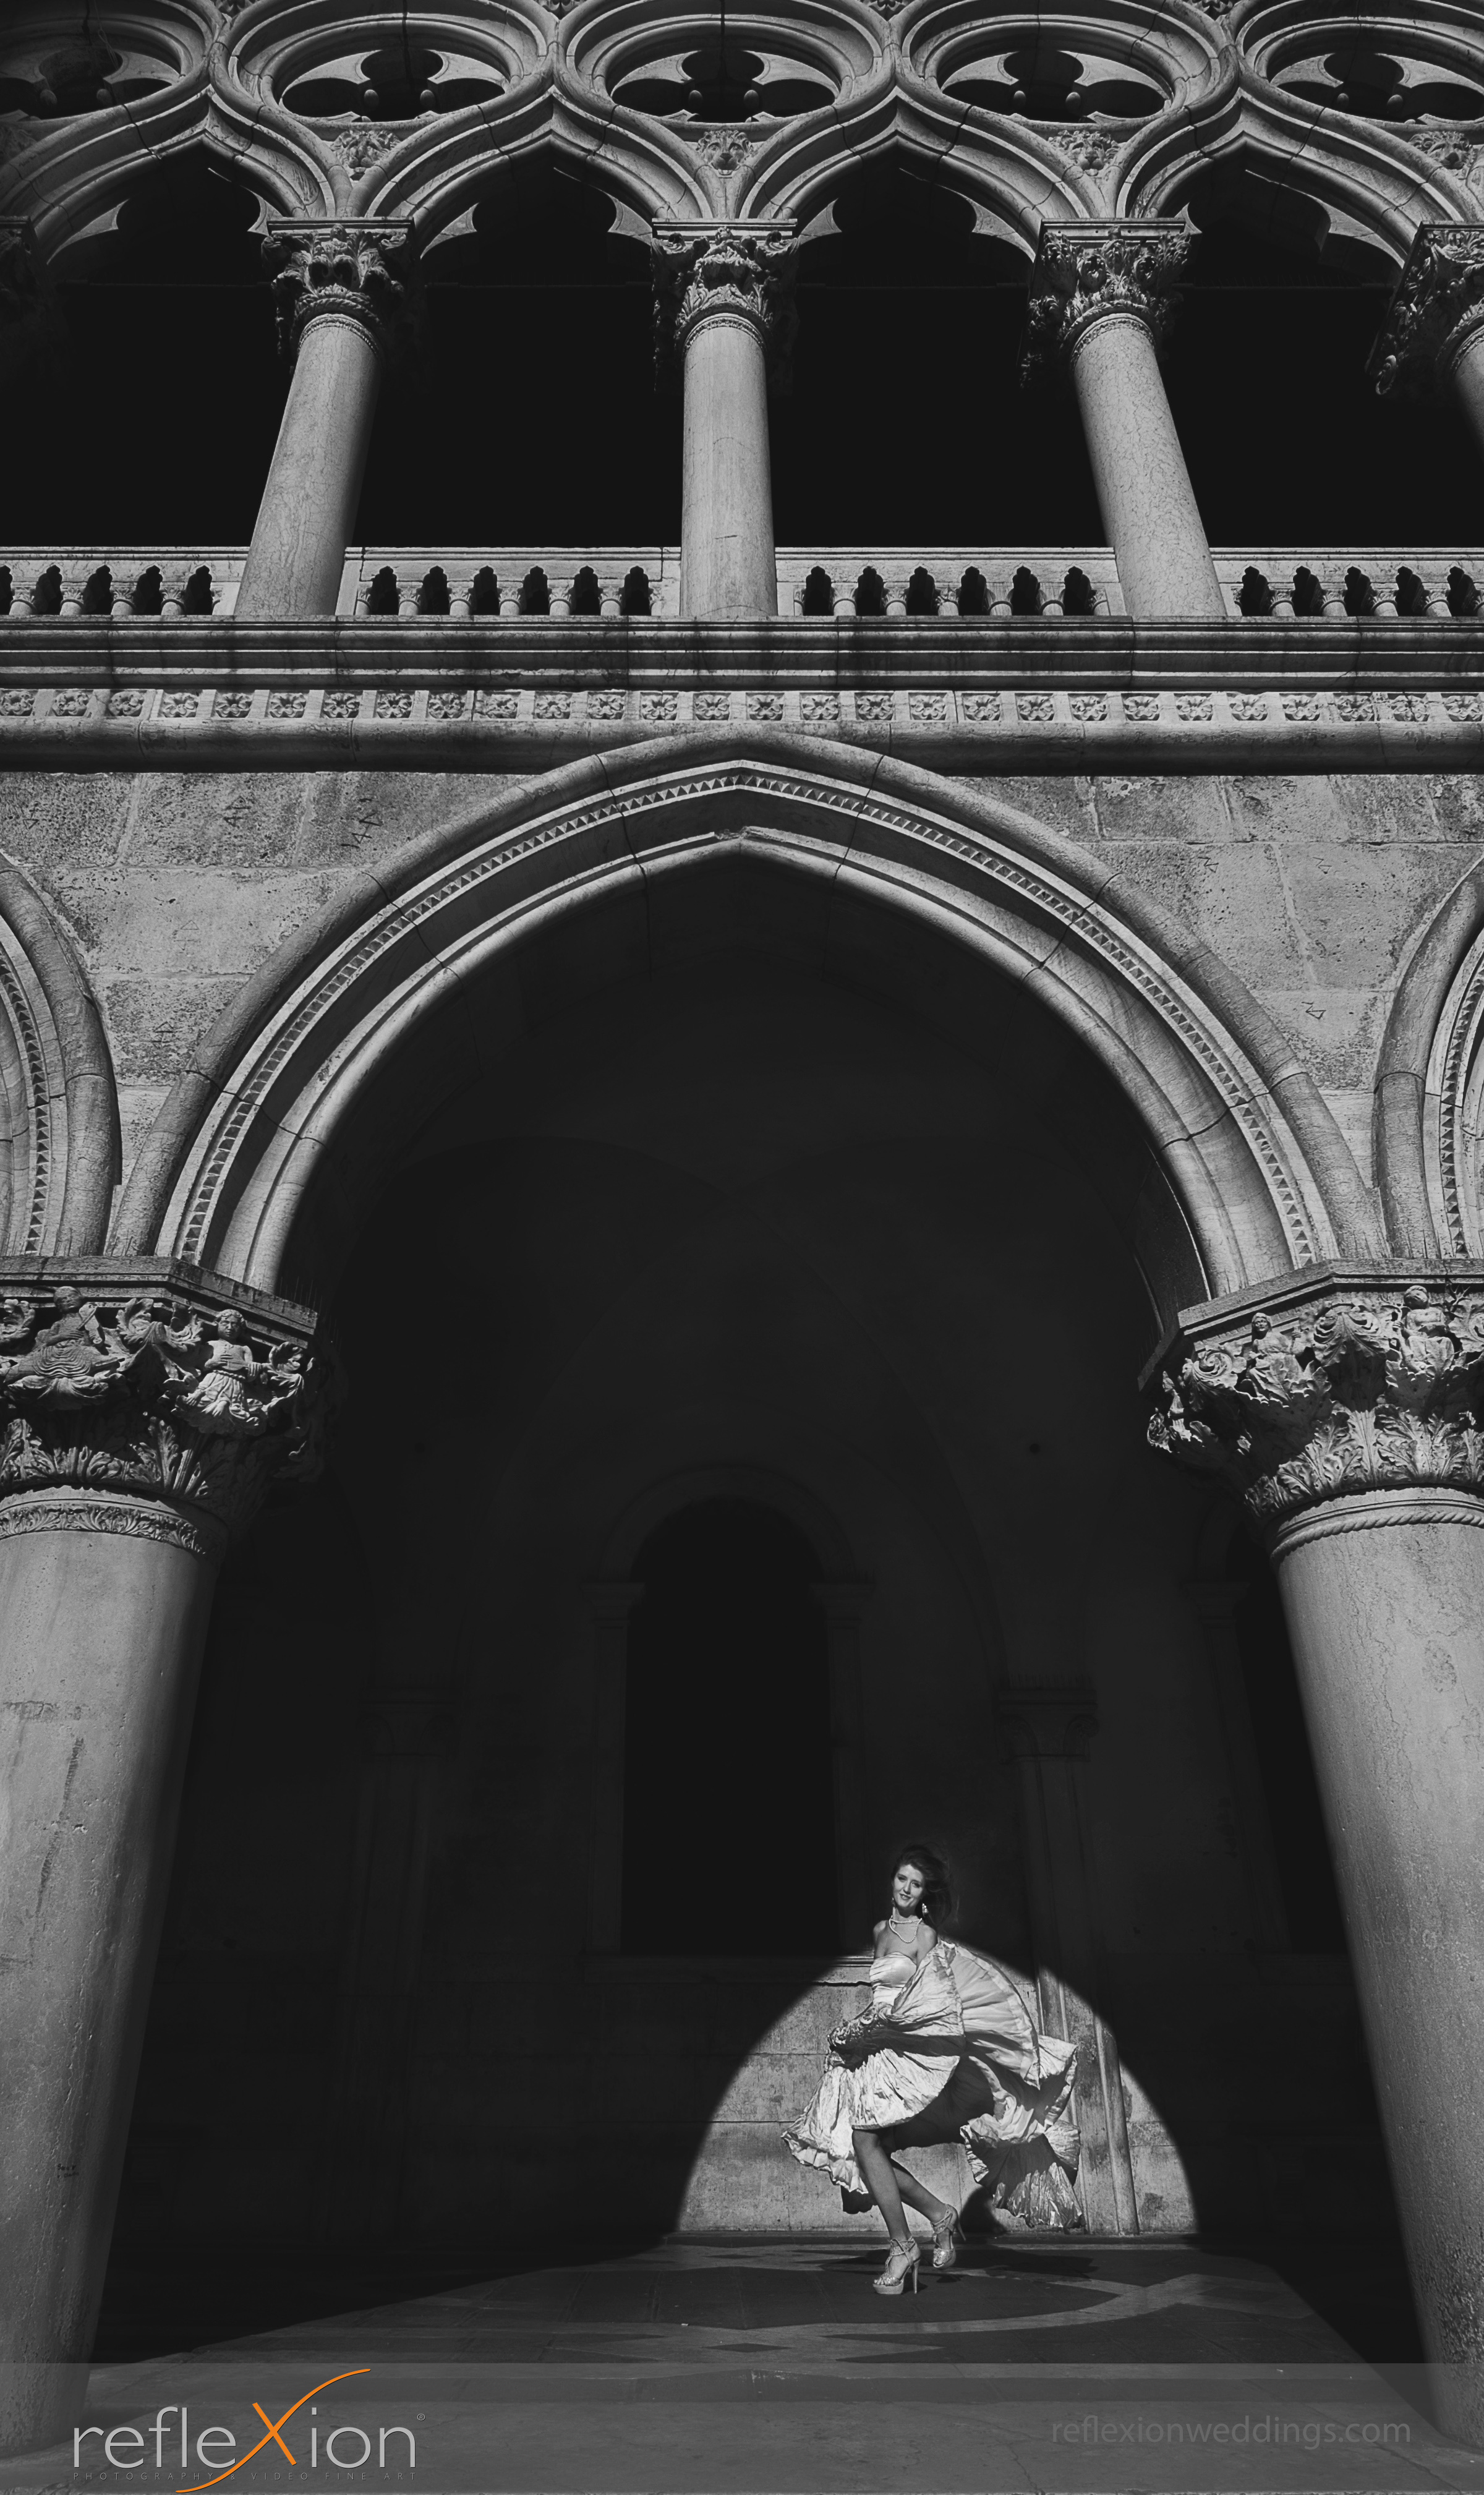 Locations for wedding photography in Venice - Doges' palace